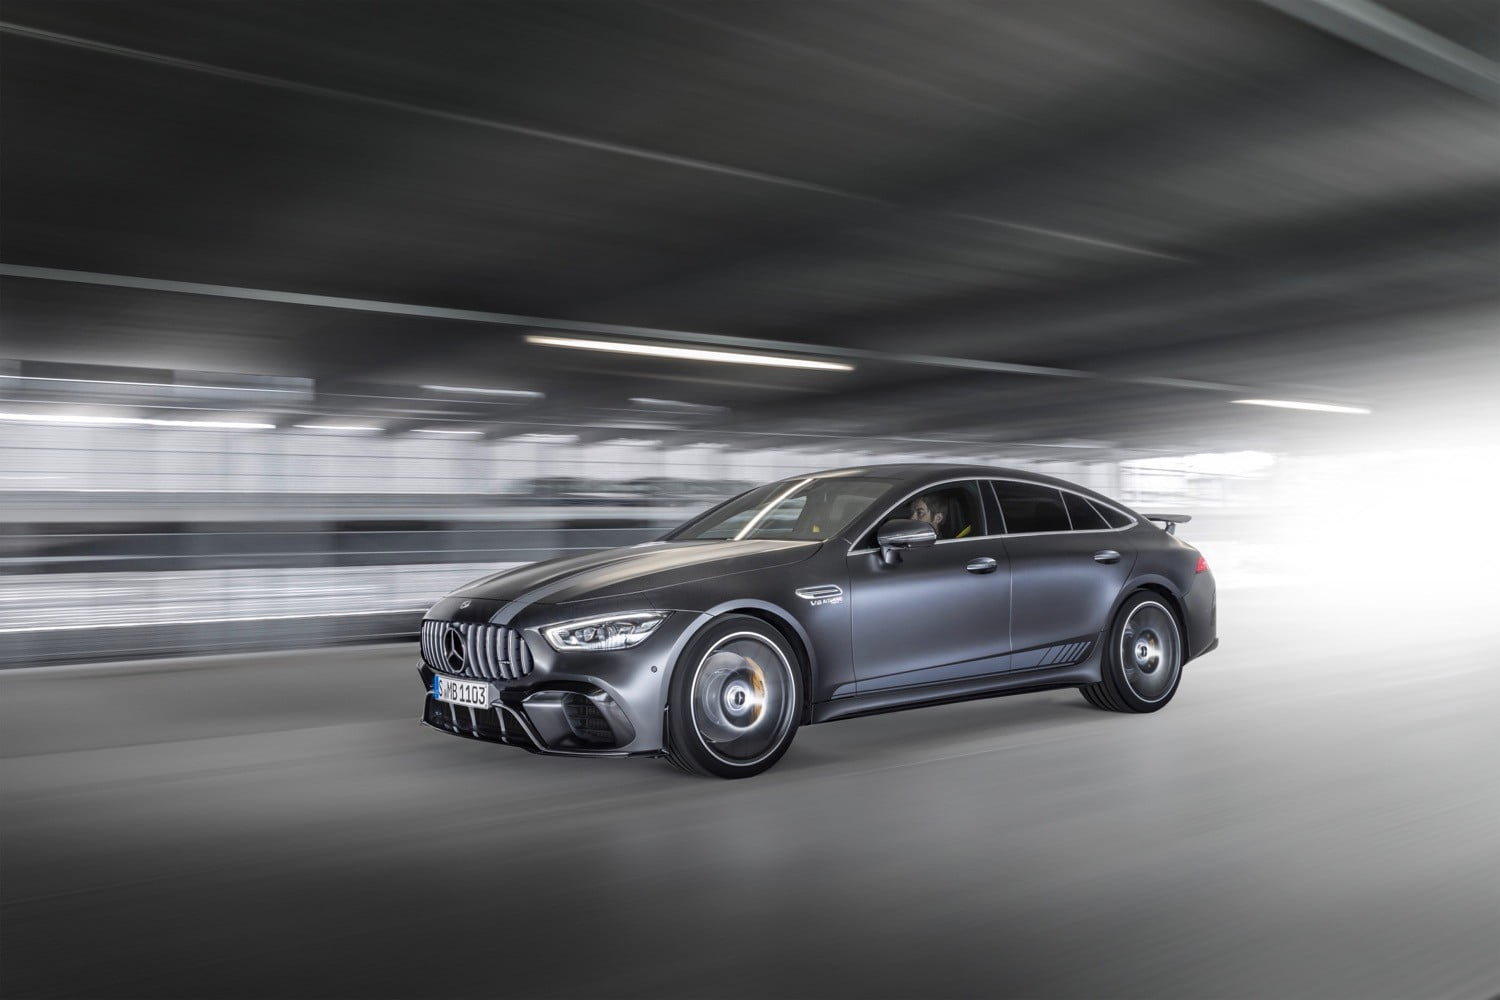 mercedes amg gt 63 s edition 1 revealed ahead of 2019 launch digital trends. Black Bedroom Furniture Sets. Home Design Ideas